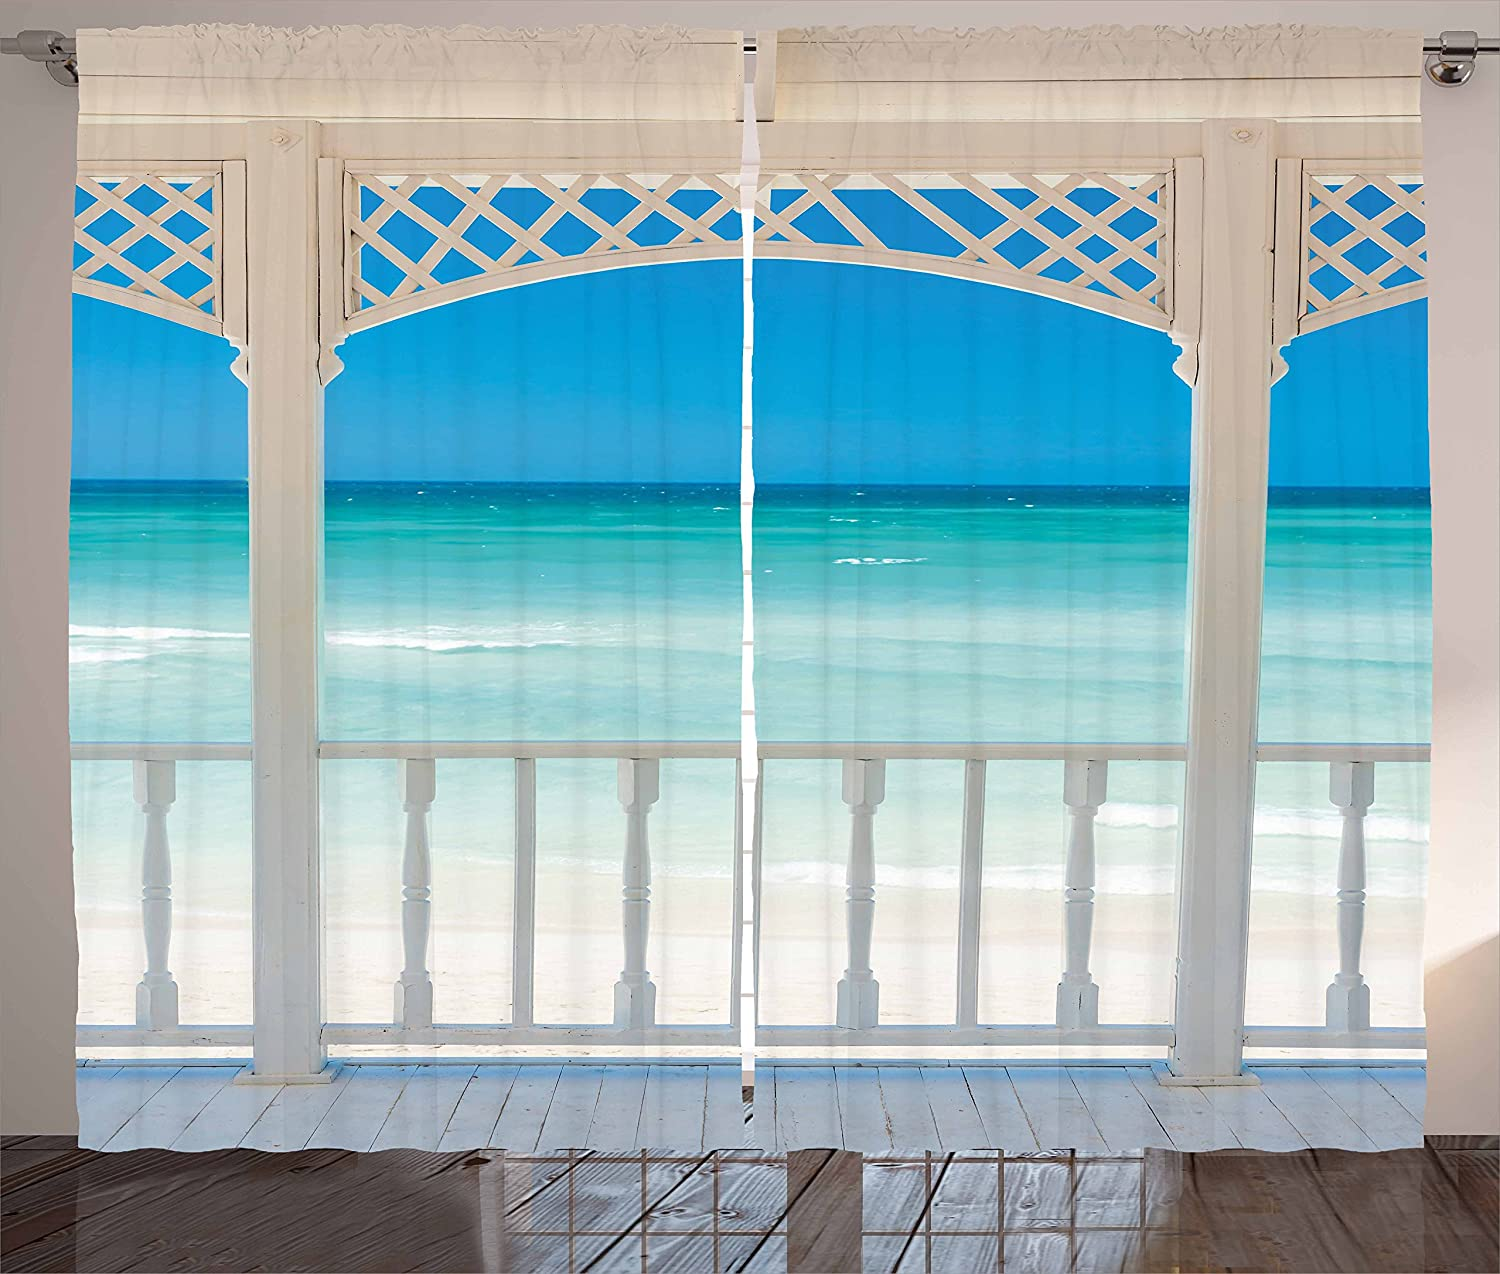 Coastal Window Curtains Romantic Wooden Terrace with View of Tropical Beach in Cuba Pavilion Image Living Room Bedroom Decor image